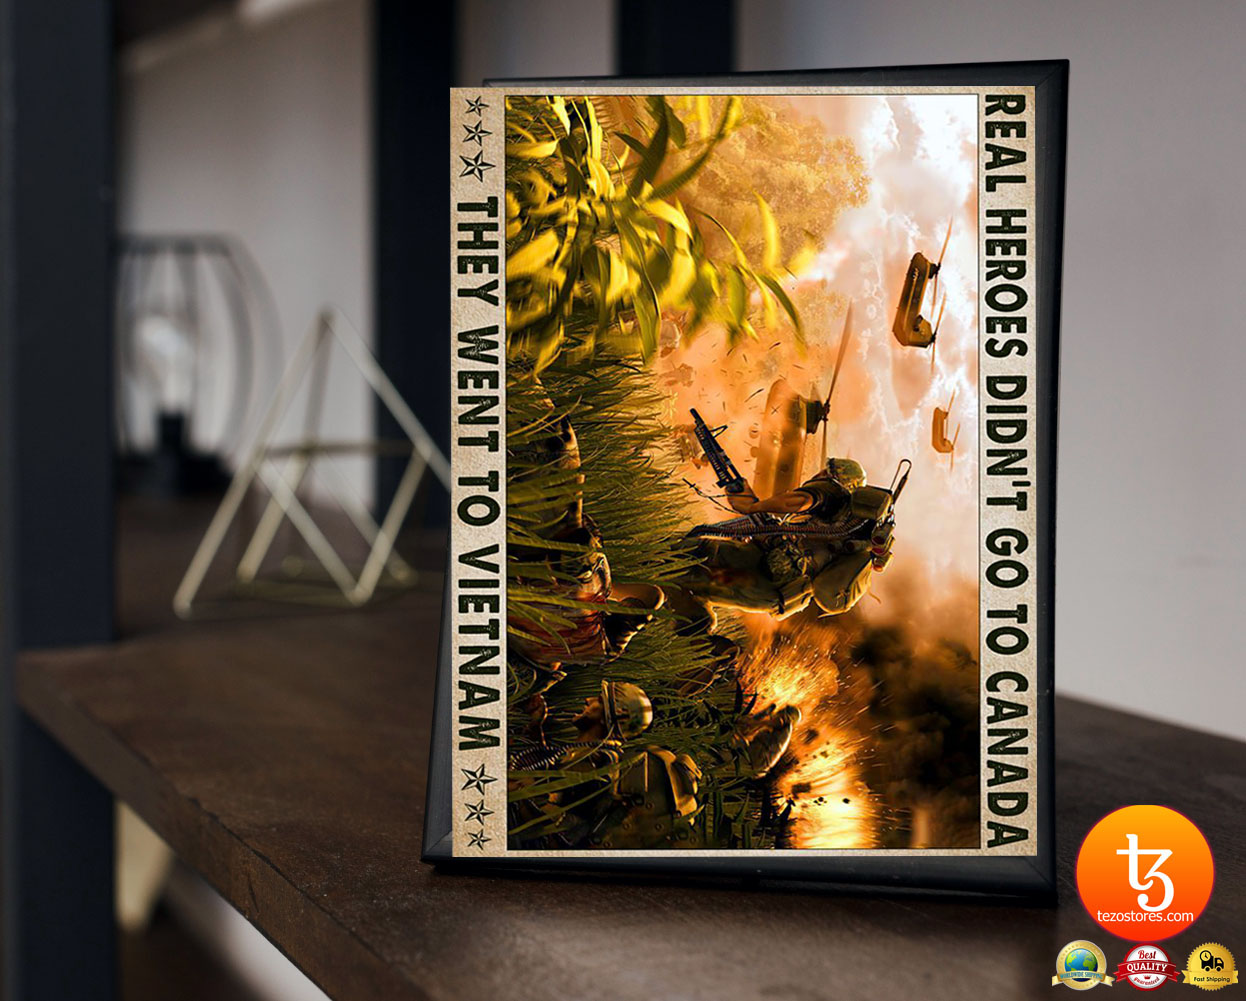 Real heroes didn't go to canada they went to vietnam poster 19